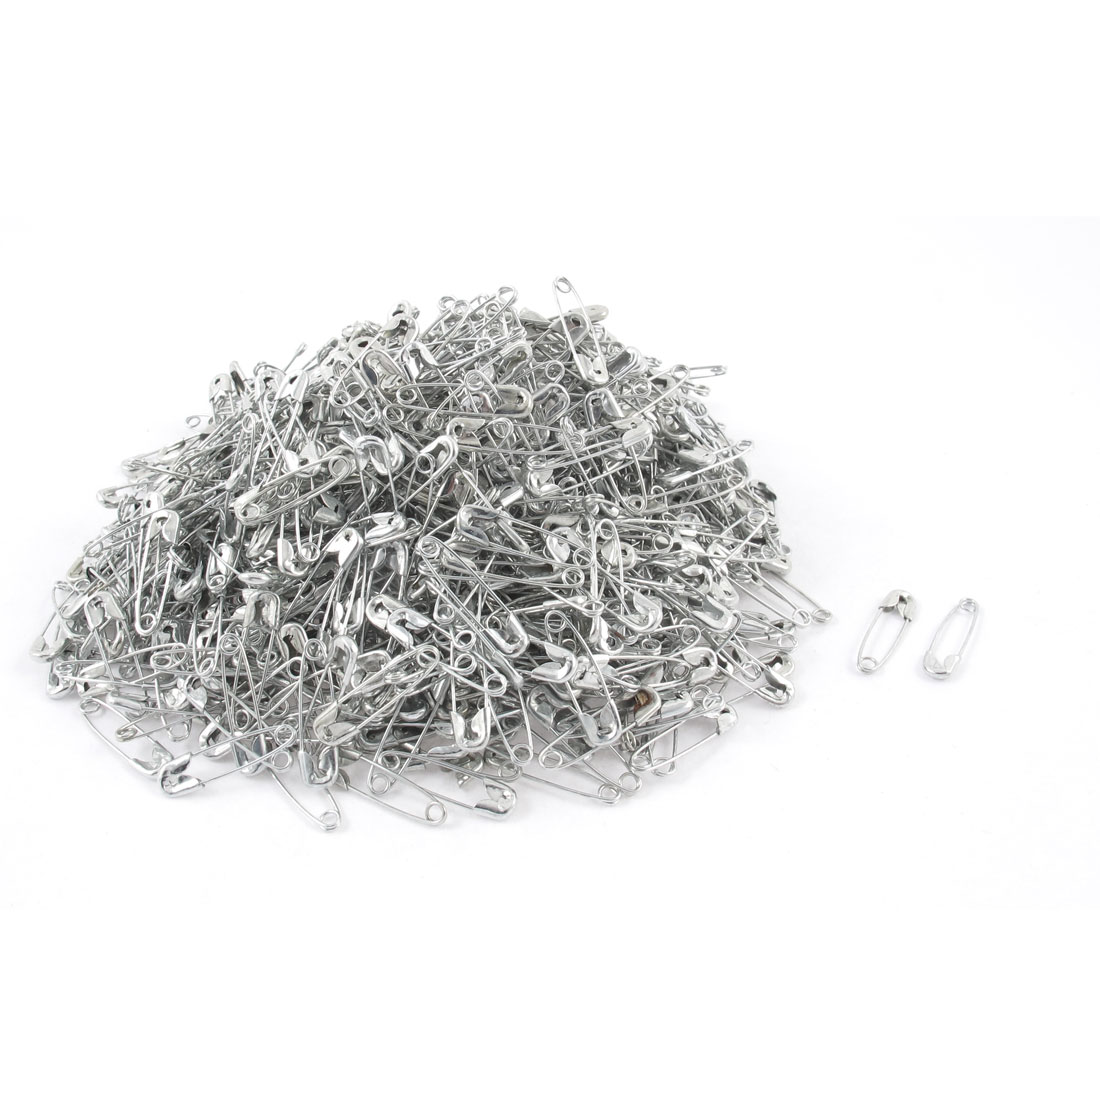 Metal Costume Sewing Dressmaking Craft Tiny Mini Safety Pins Silver Tone 1000pcs